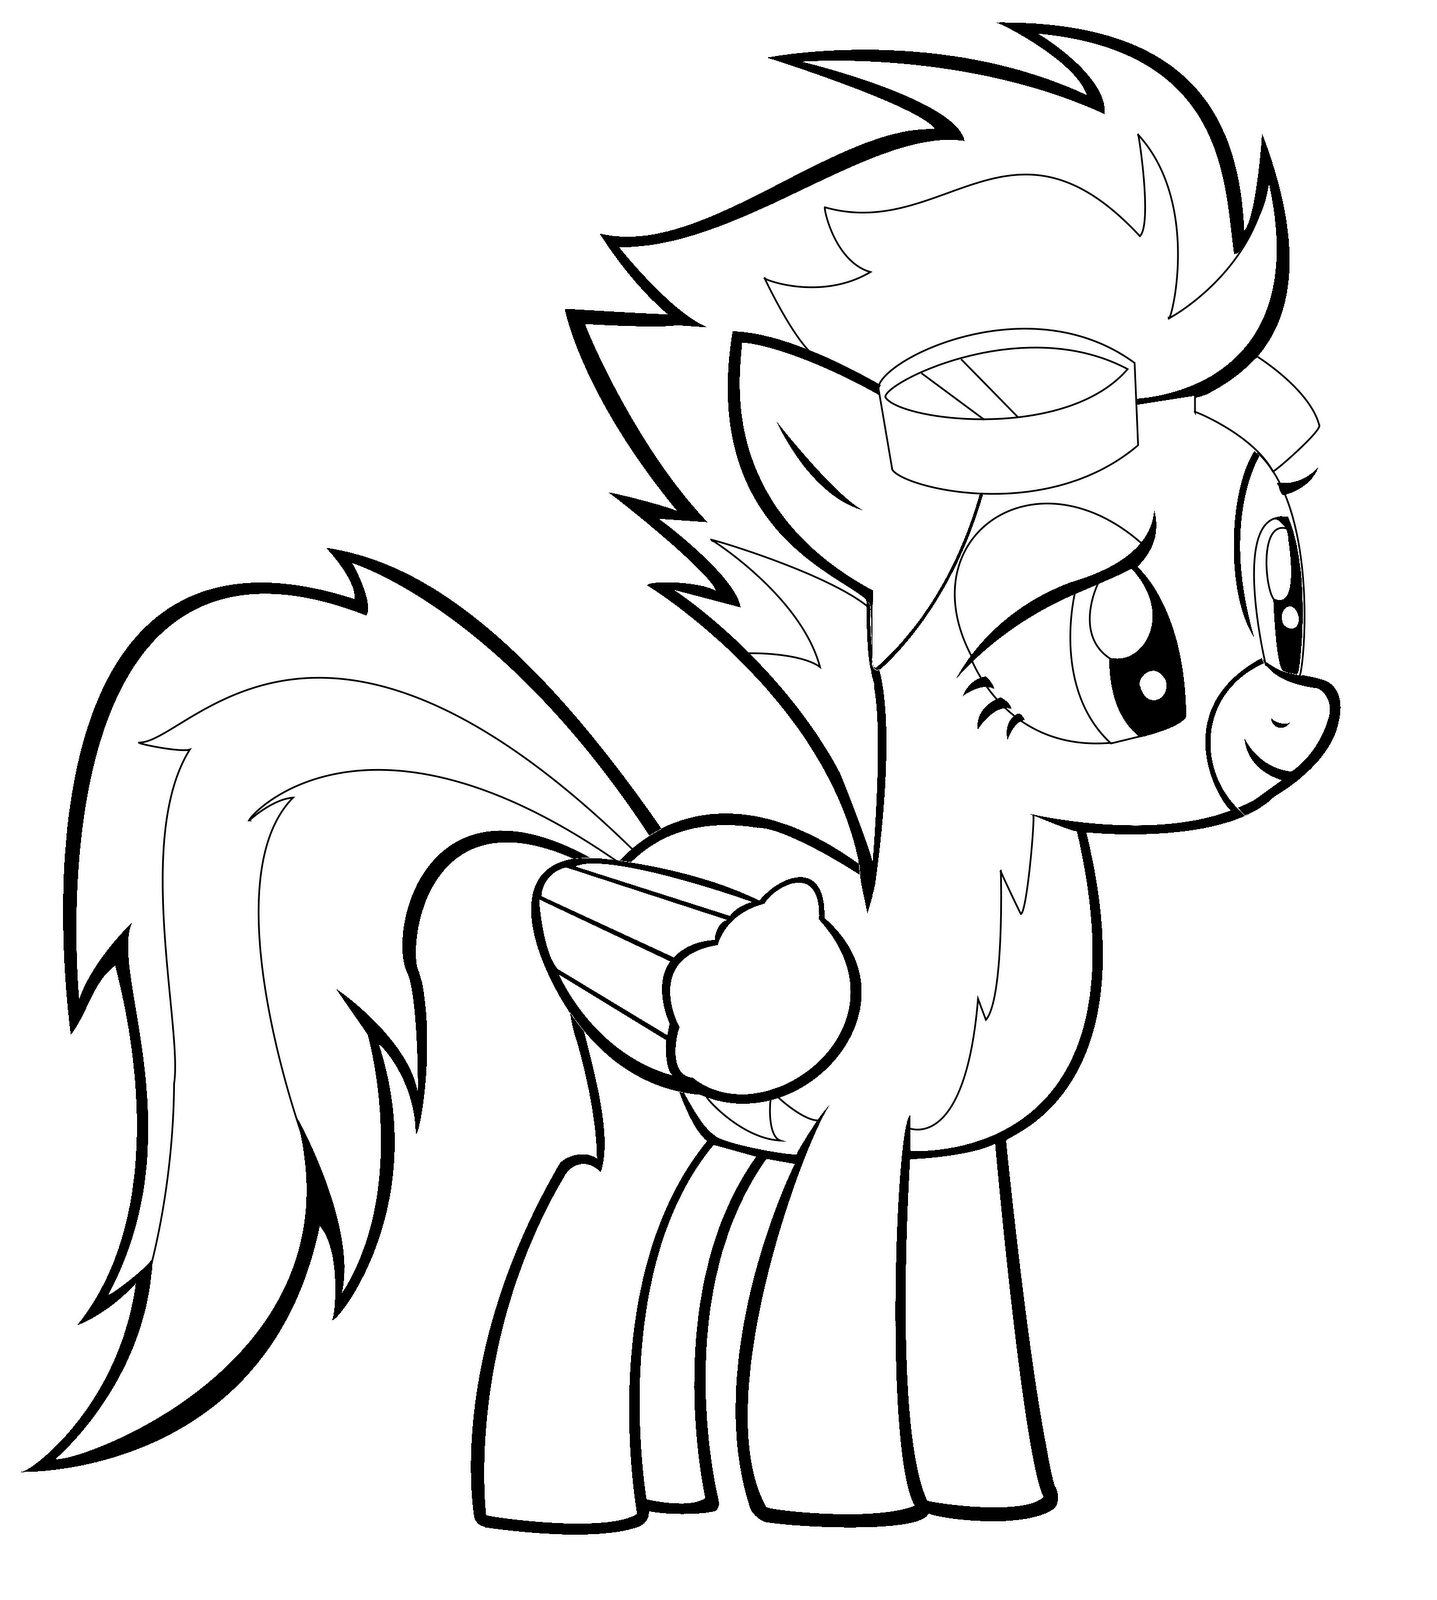 Pin de CJ Smalley en Coloring Pages/LineArt-MLP: FiM | Pinterest